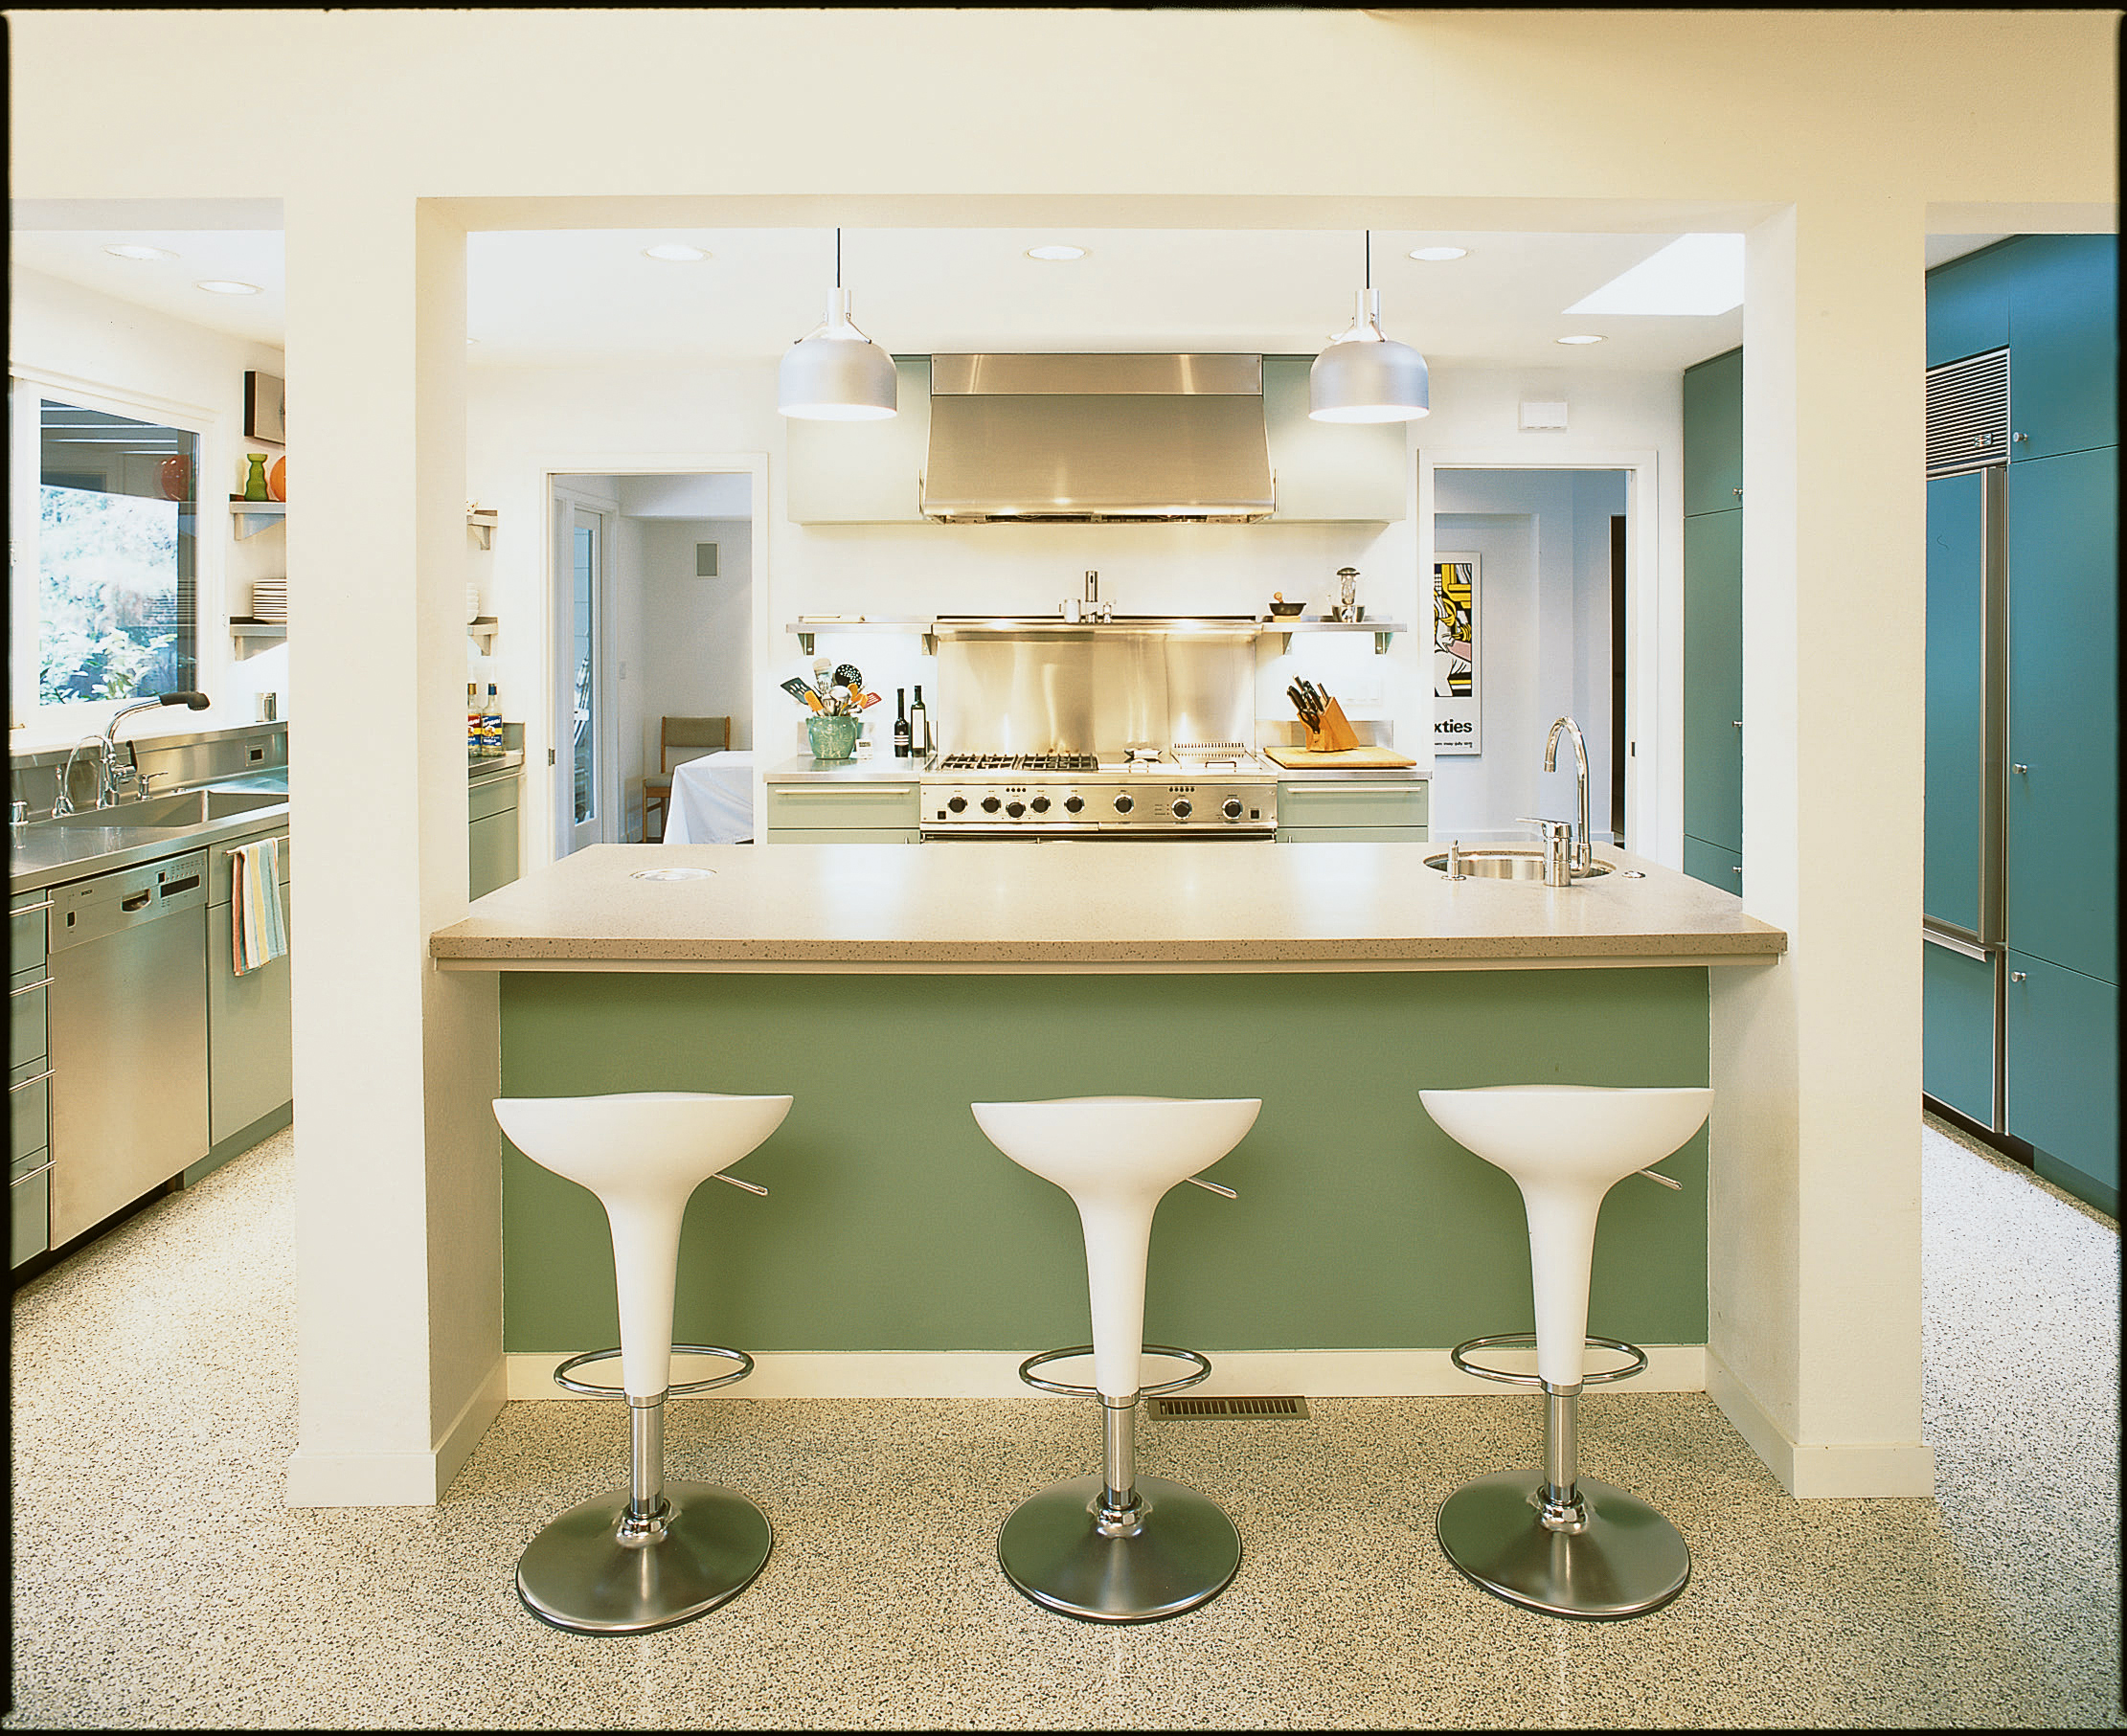 choosing interior spacious image ideas with white design kitchen cabinets country